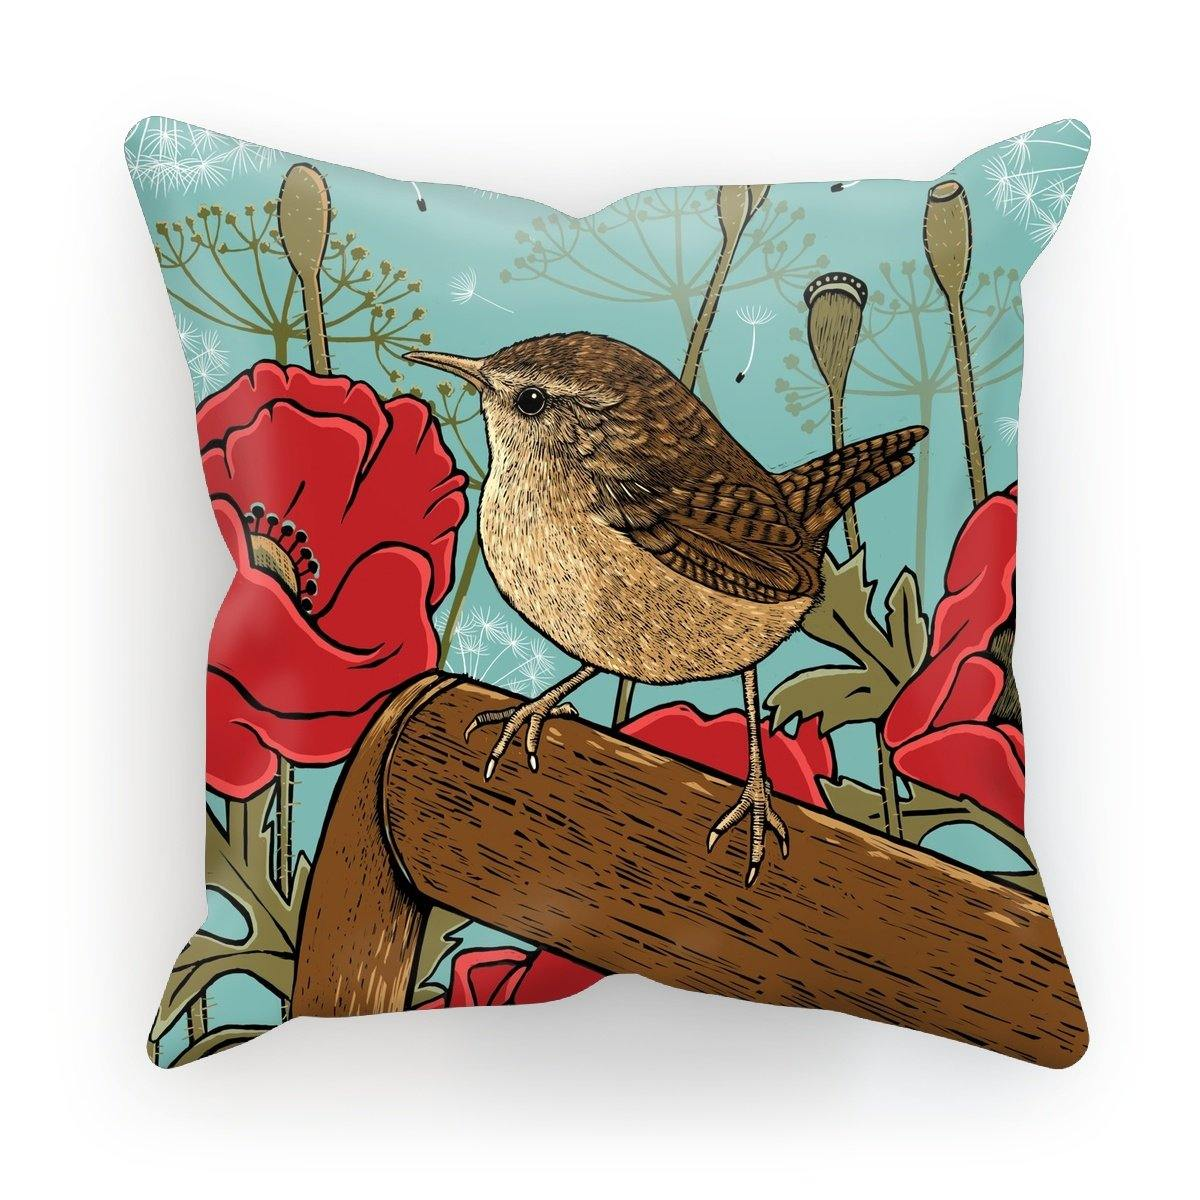 Wren Cushion by Fox & Boo